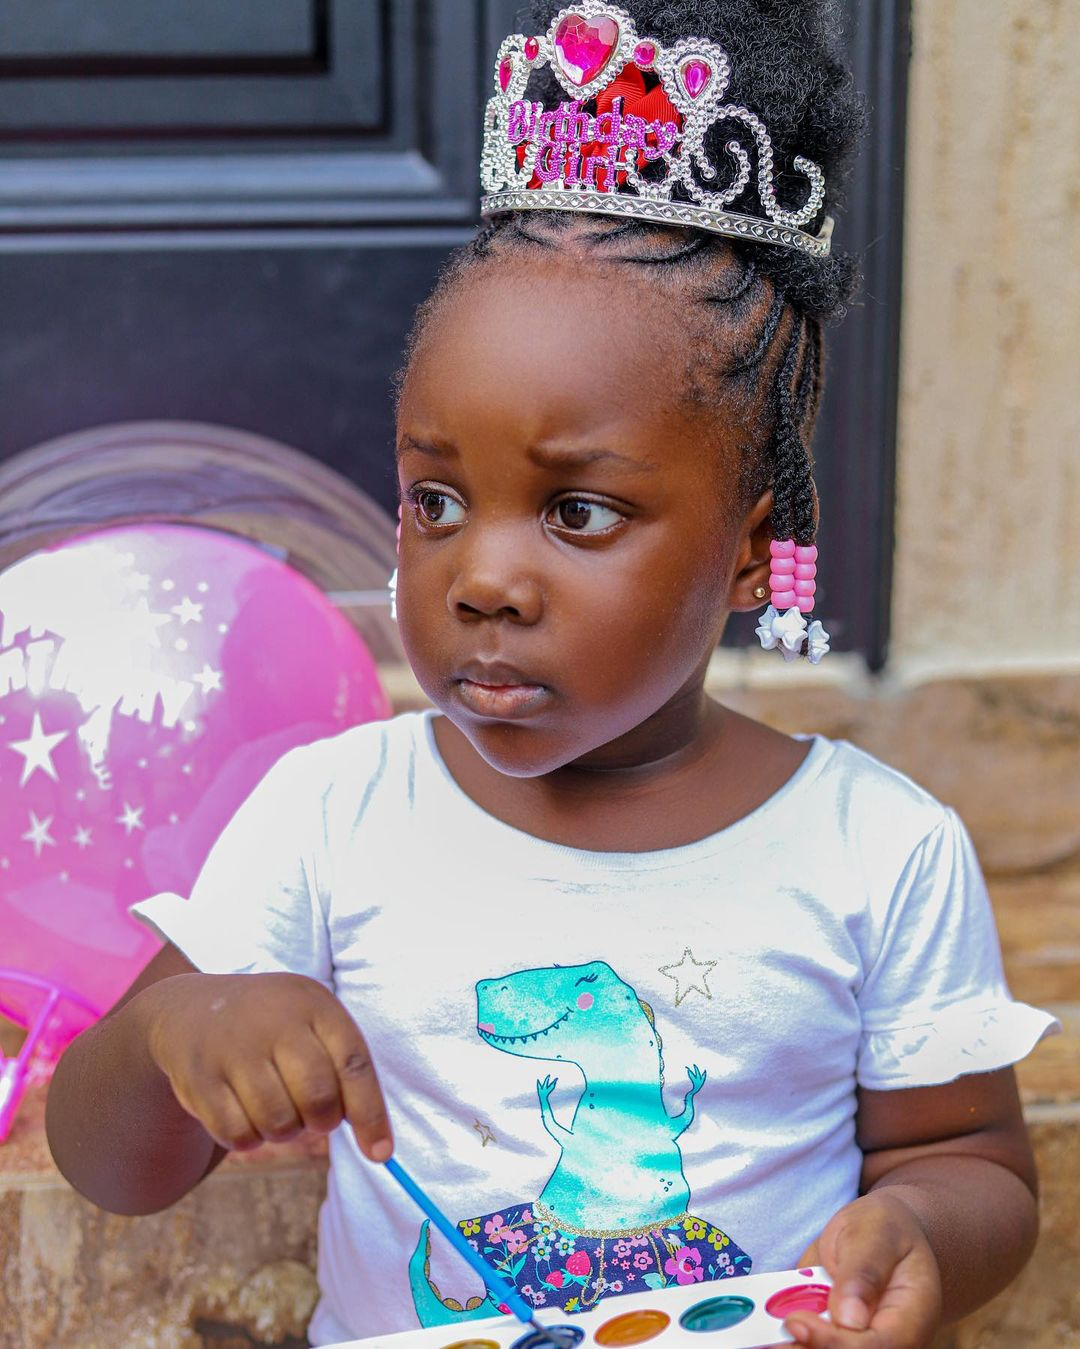 3-Year-Old daughter of Stonebwoy drives him in town - Video 2